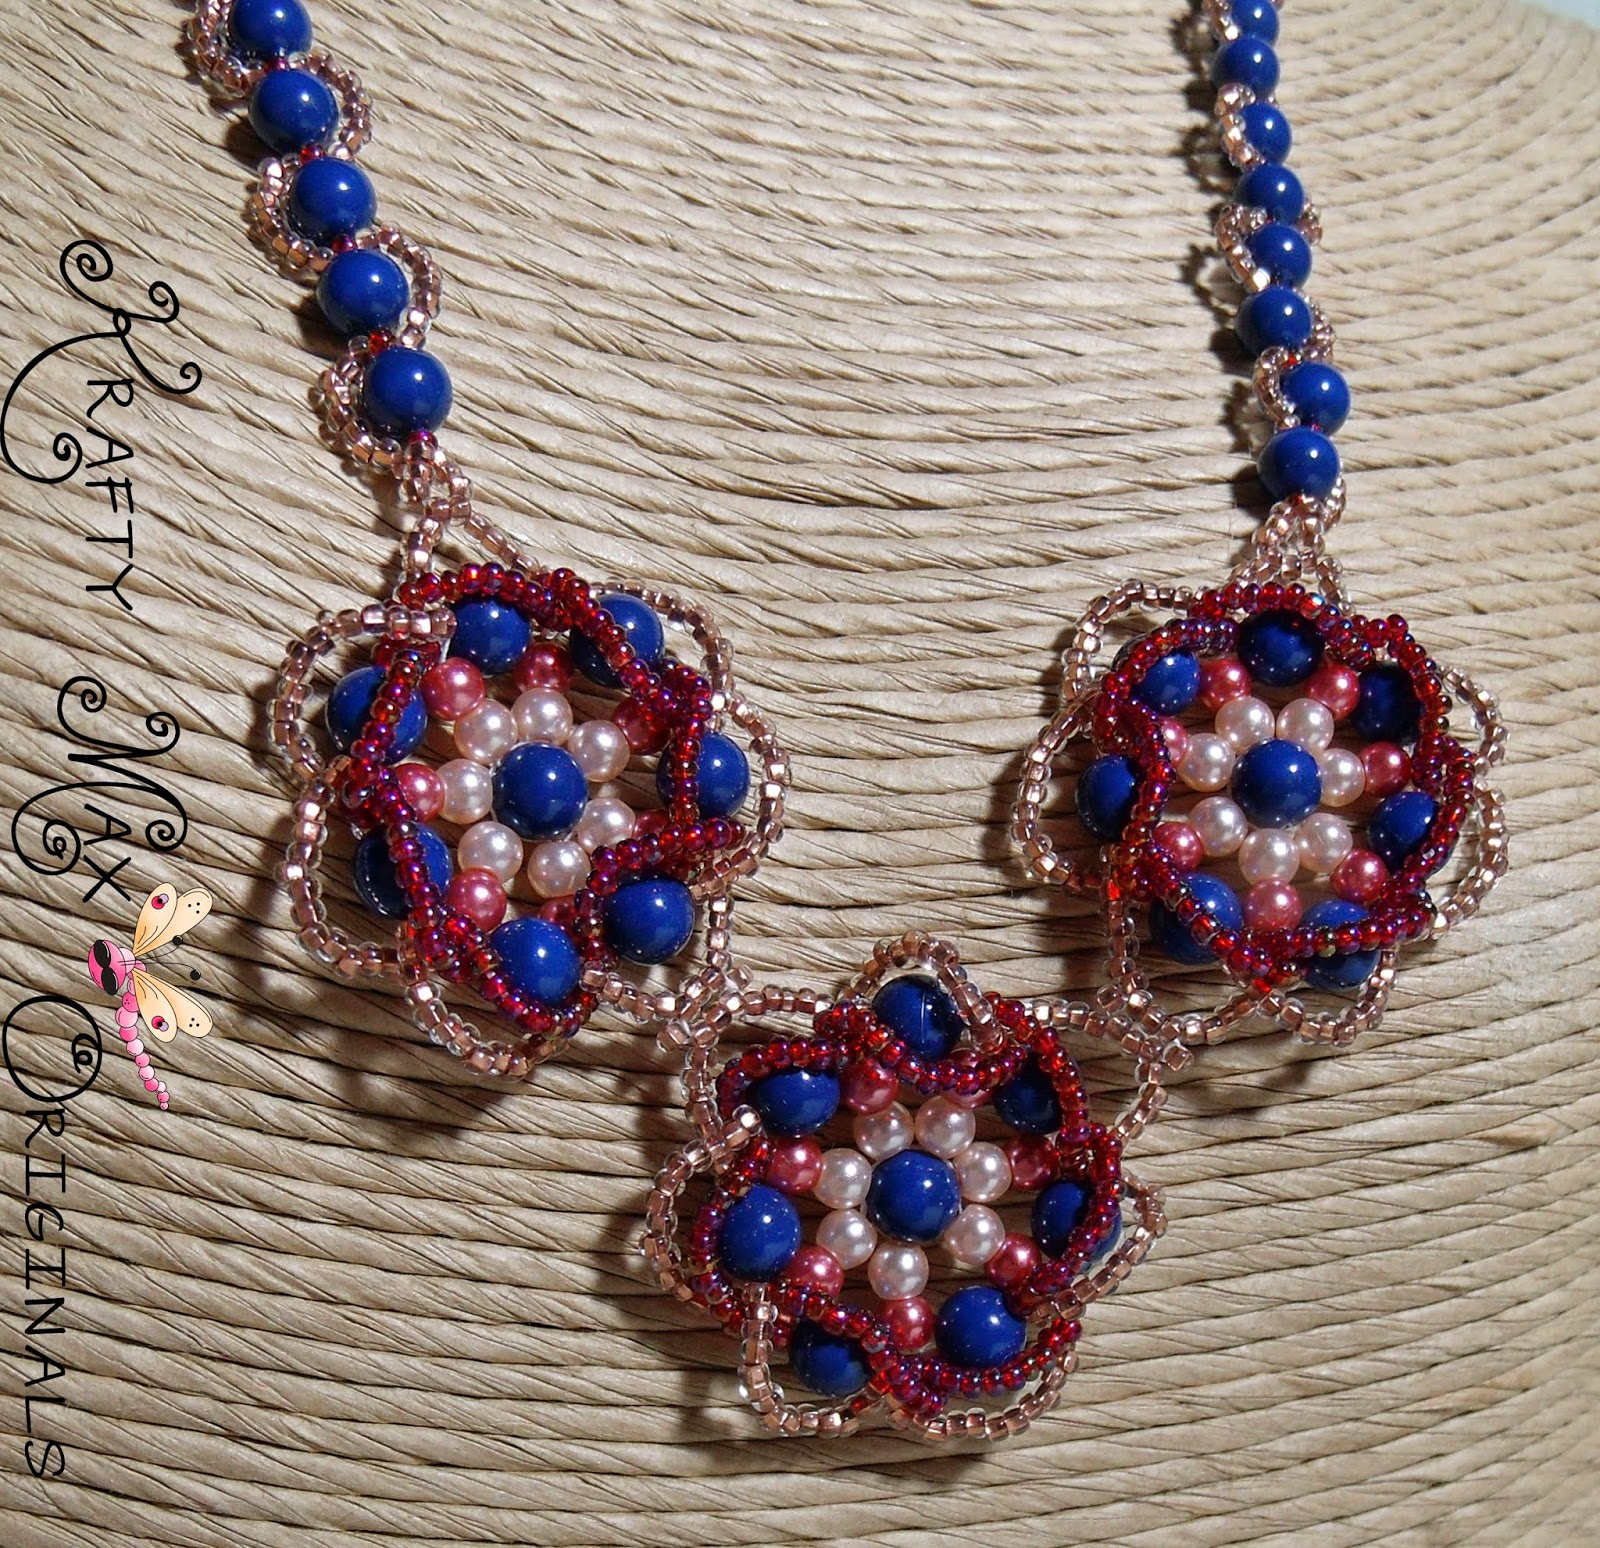 http://www.lajuliet.com/index.php/2013-01-04-15-21-51/ad/beadwork,89/exclusive-blue-flowers-bursting-with-spring-swarovski-pearl-beadwoven-neclace-set-a-krafty-max-original-design,395